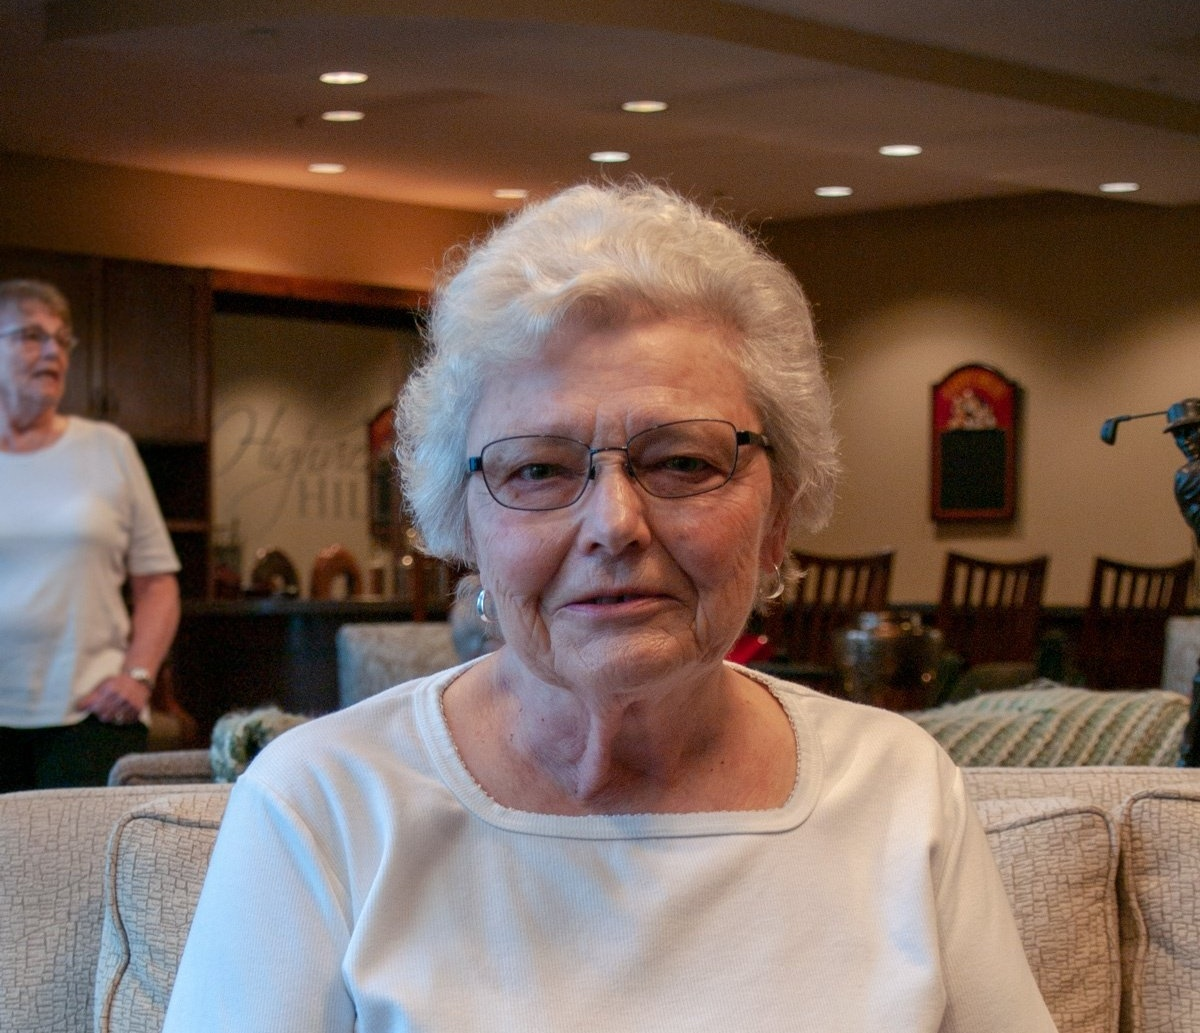 Meet the Wii Bowling Team: Evelyn Ammom